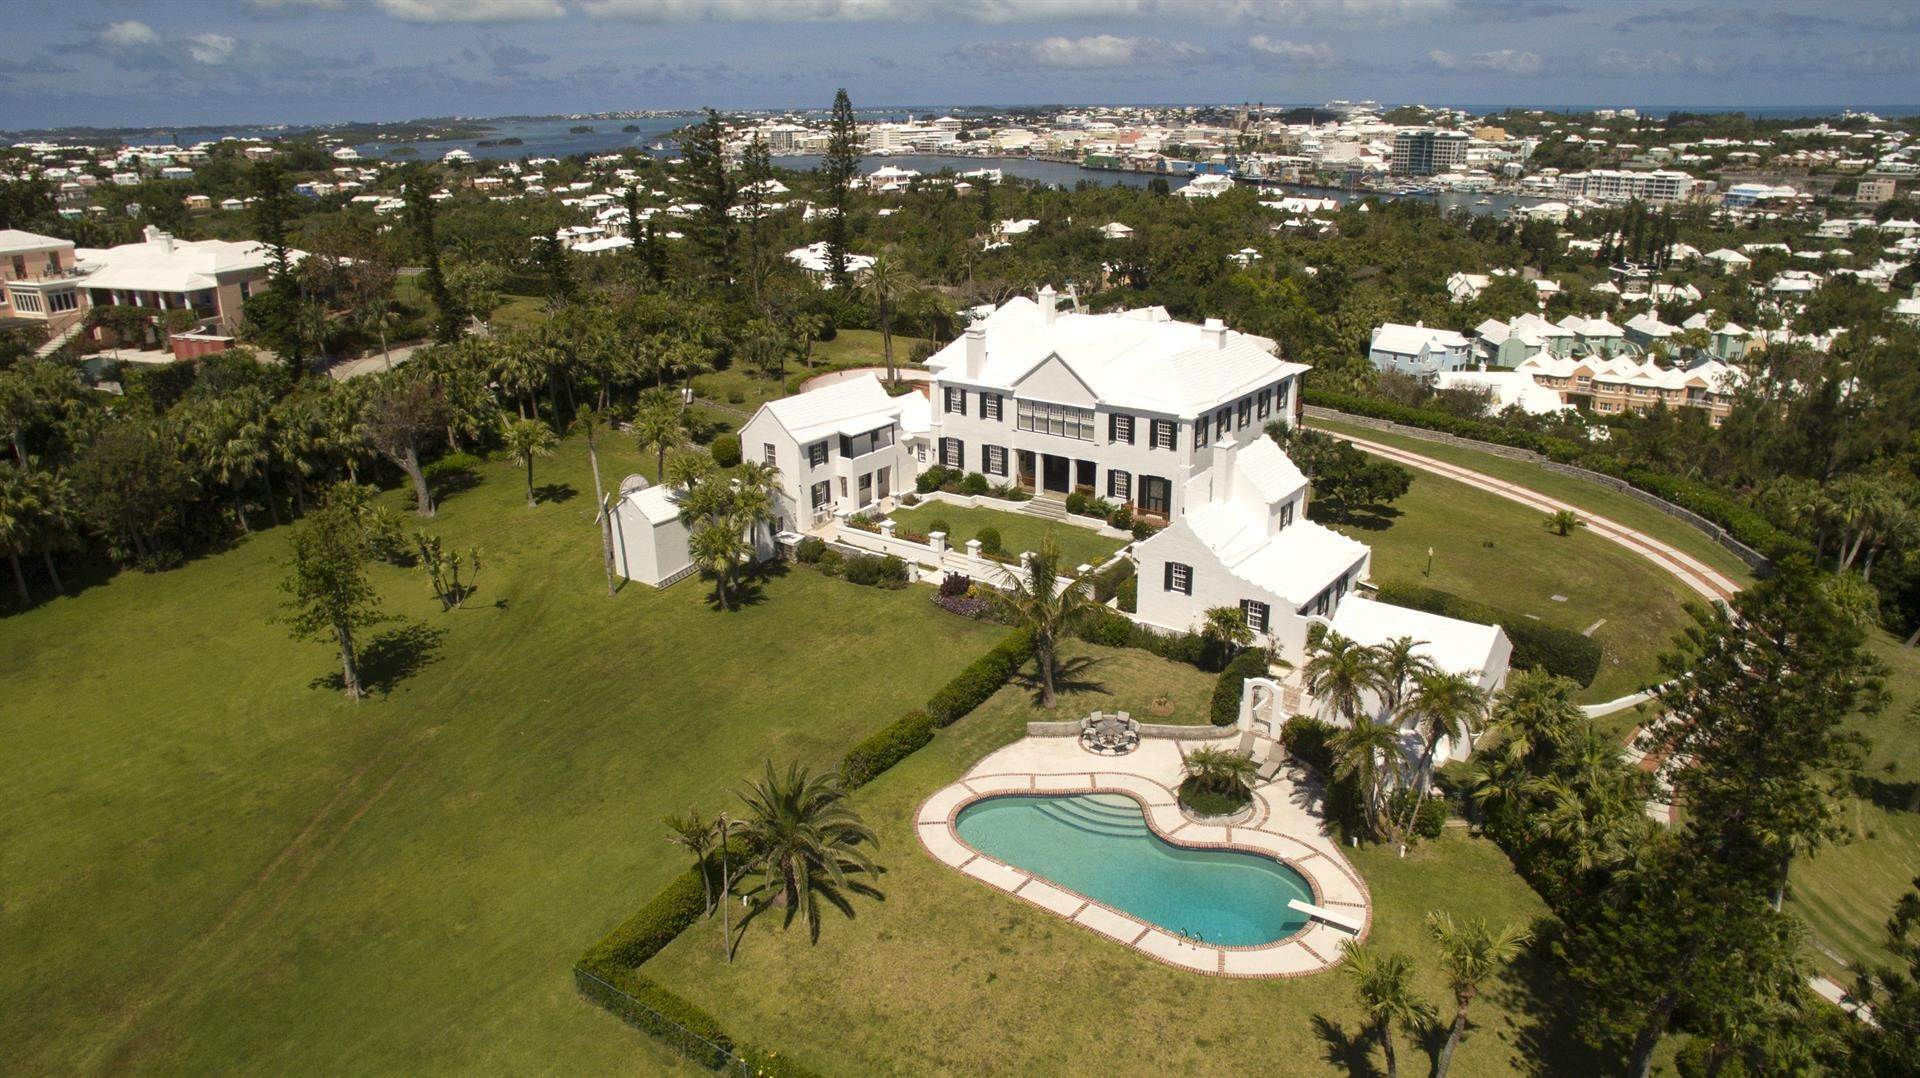 4. Propriedade para Venda às Bellevue Estate At Grape Bay Beach Bellevue Estate At Grape Bay Beach, 6 Bellevue Drive,Bermuda – Sinclair Realty